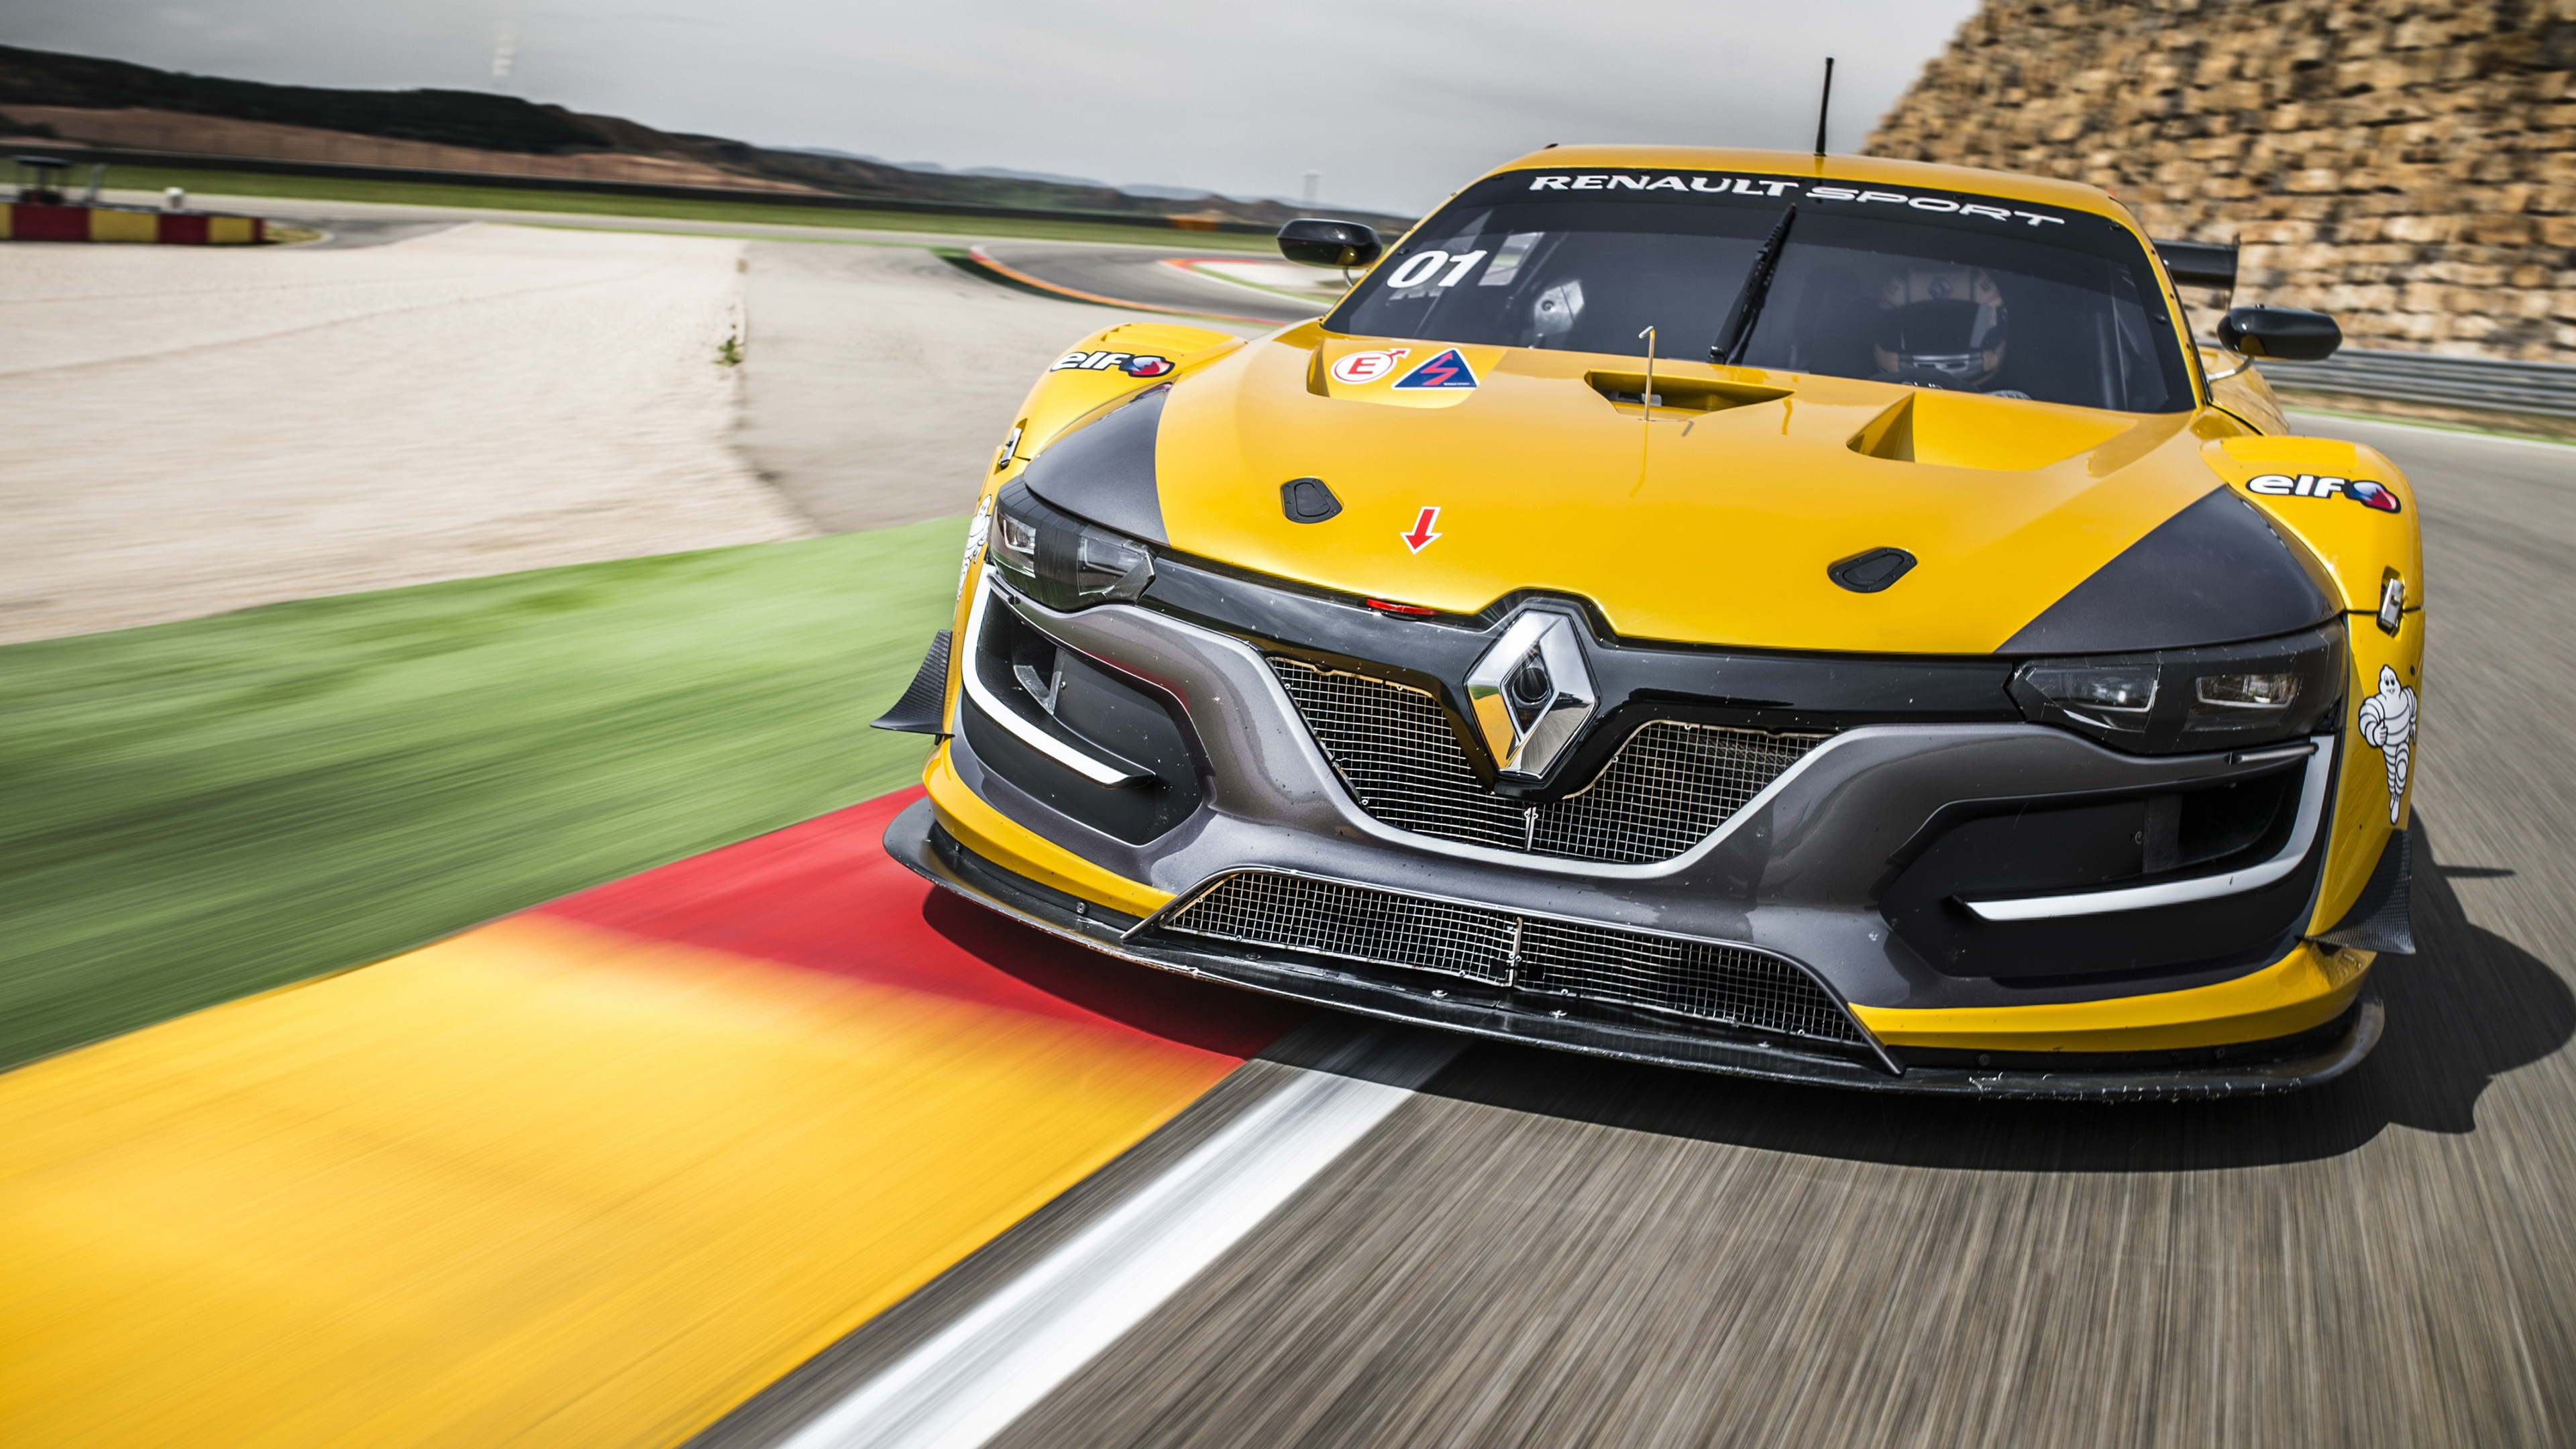 Renault Sport Rs Racing Car Wallpapers In Jpg Format For Free Download